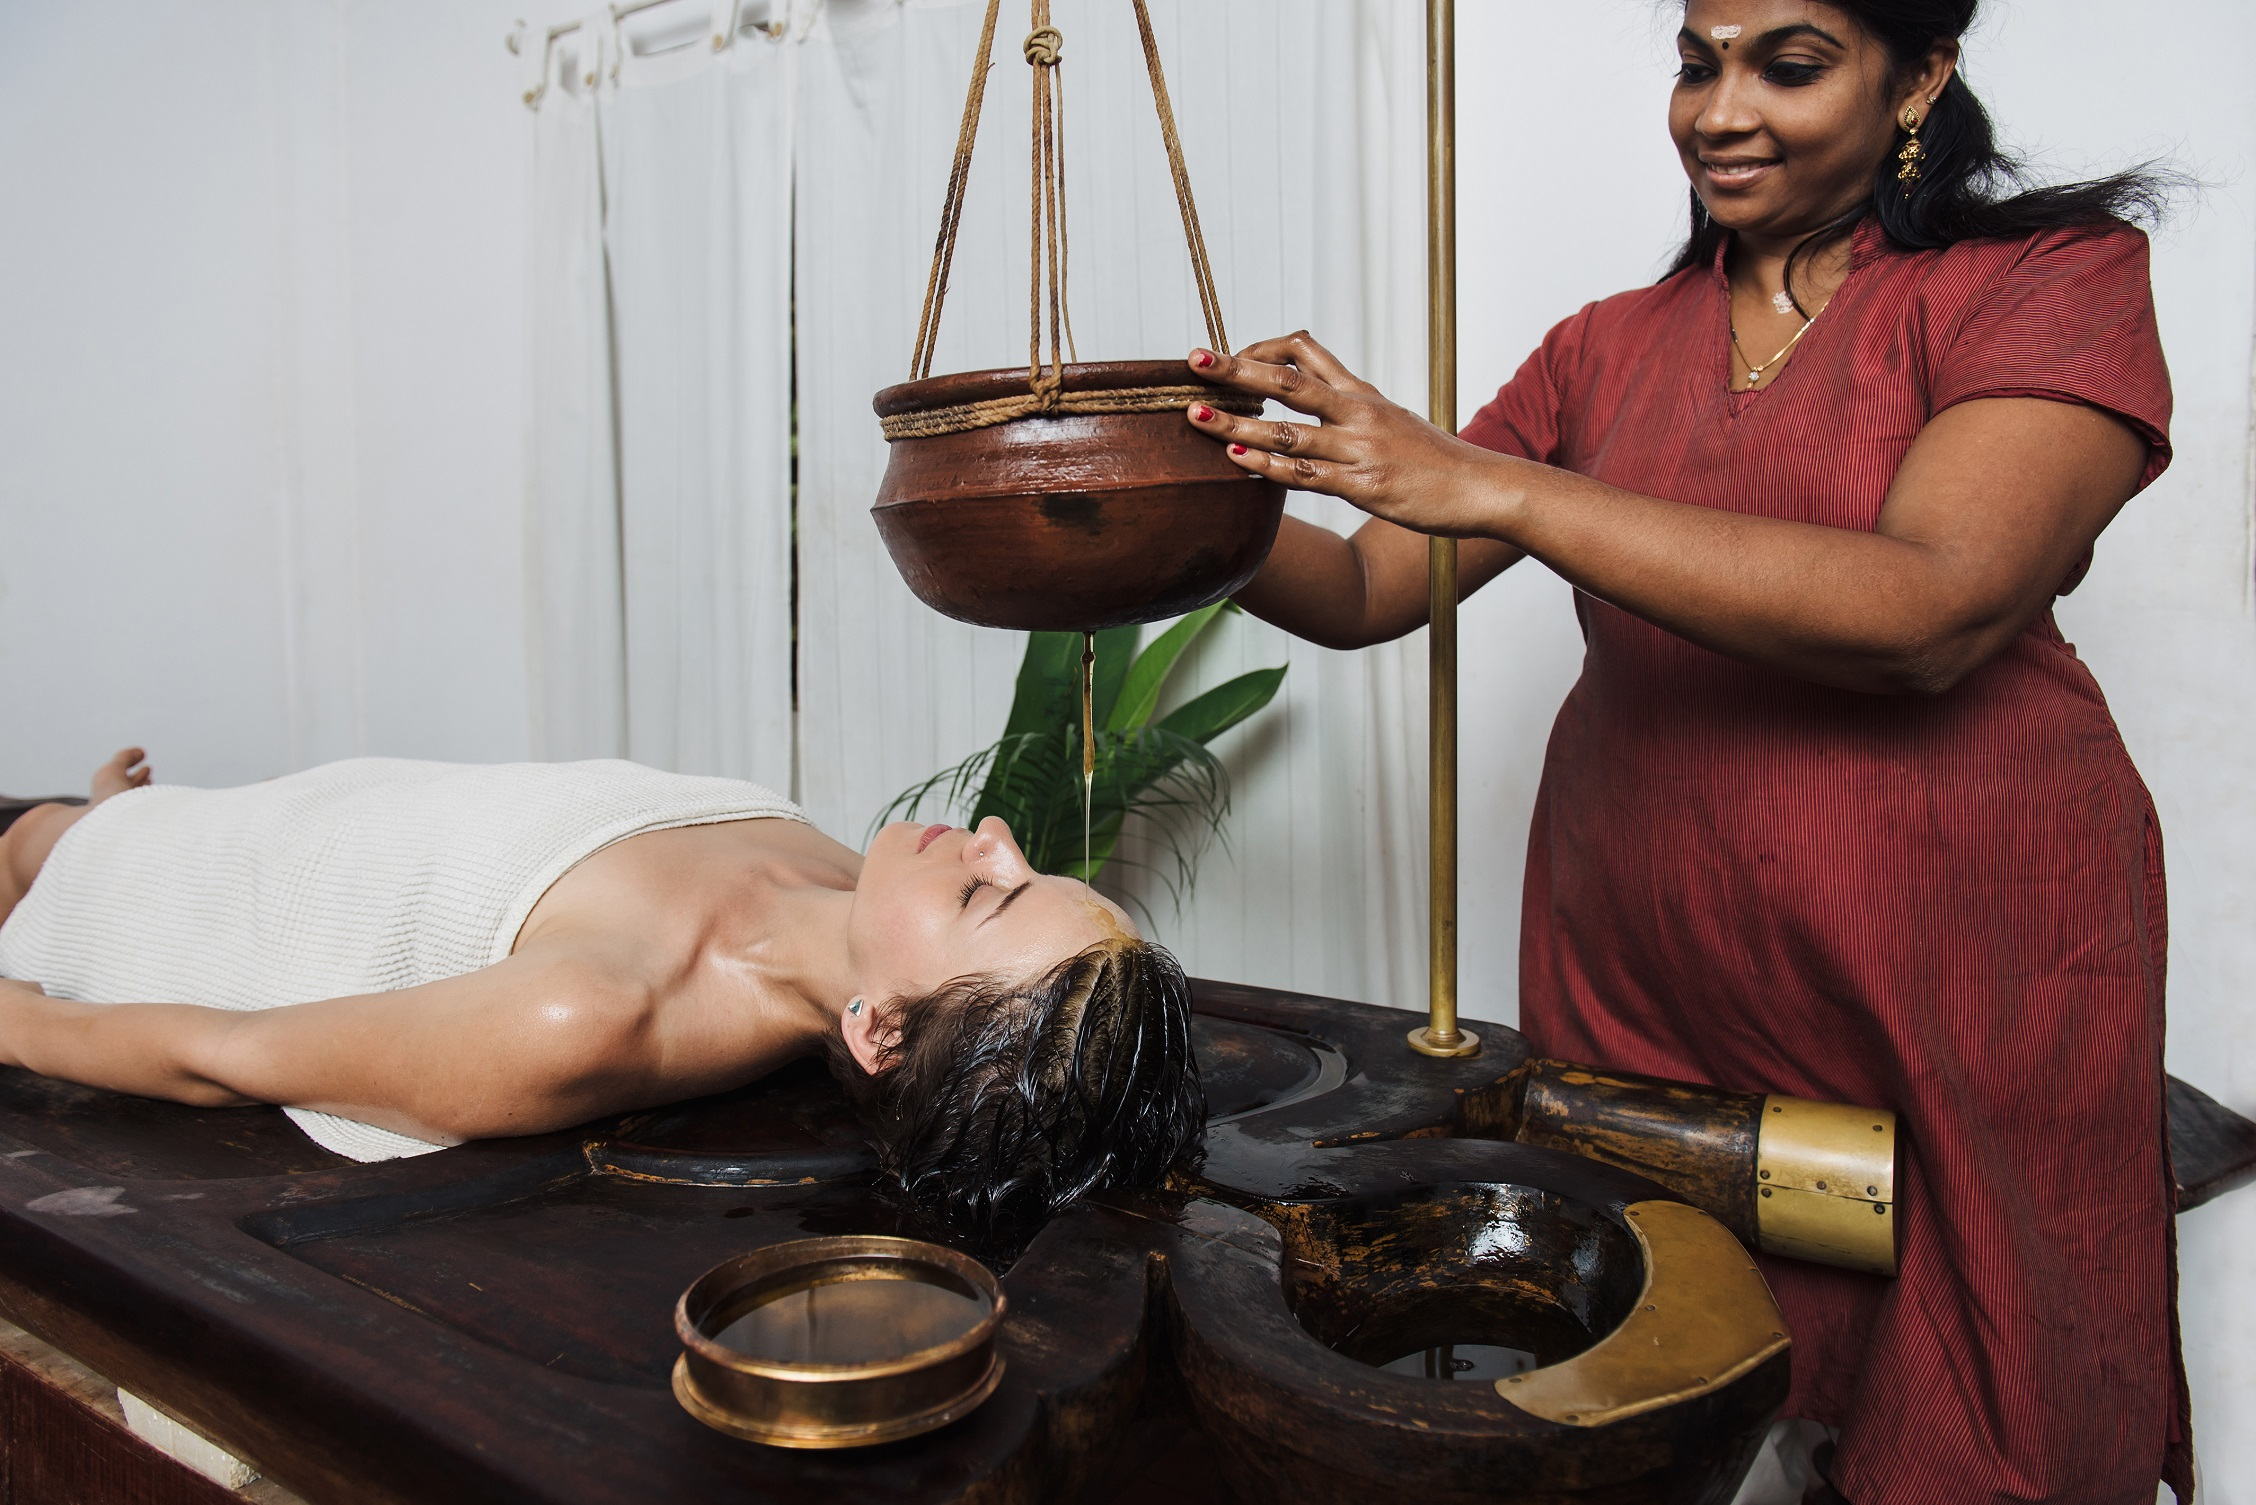 Caucasian woman having Ayurveda shirodhara treatment in India, Kerala state